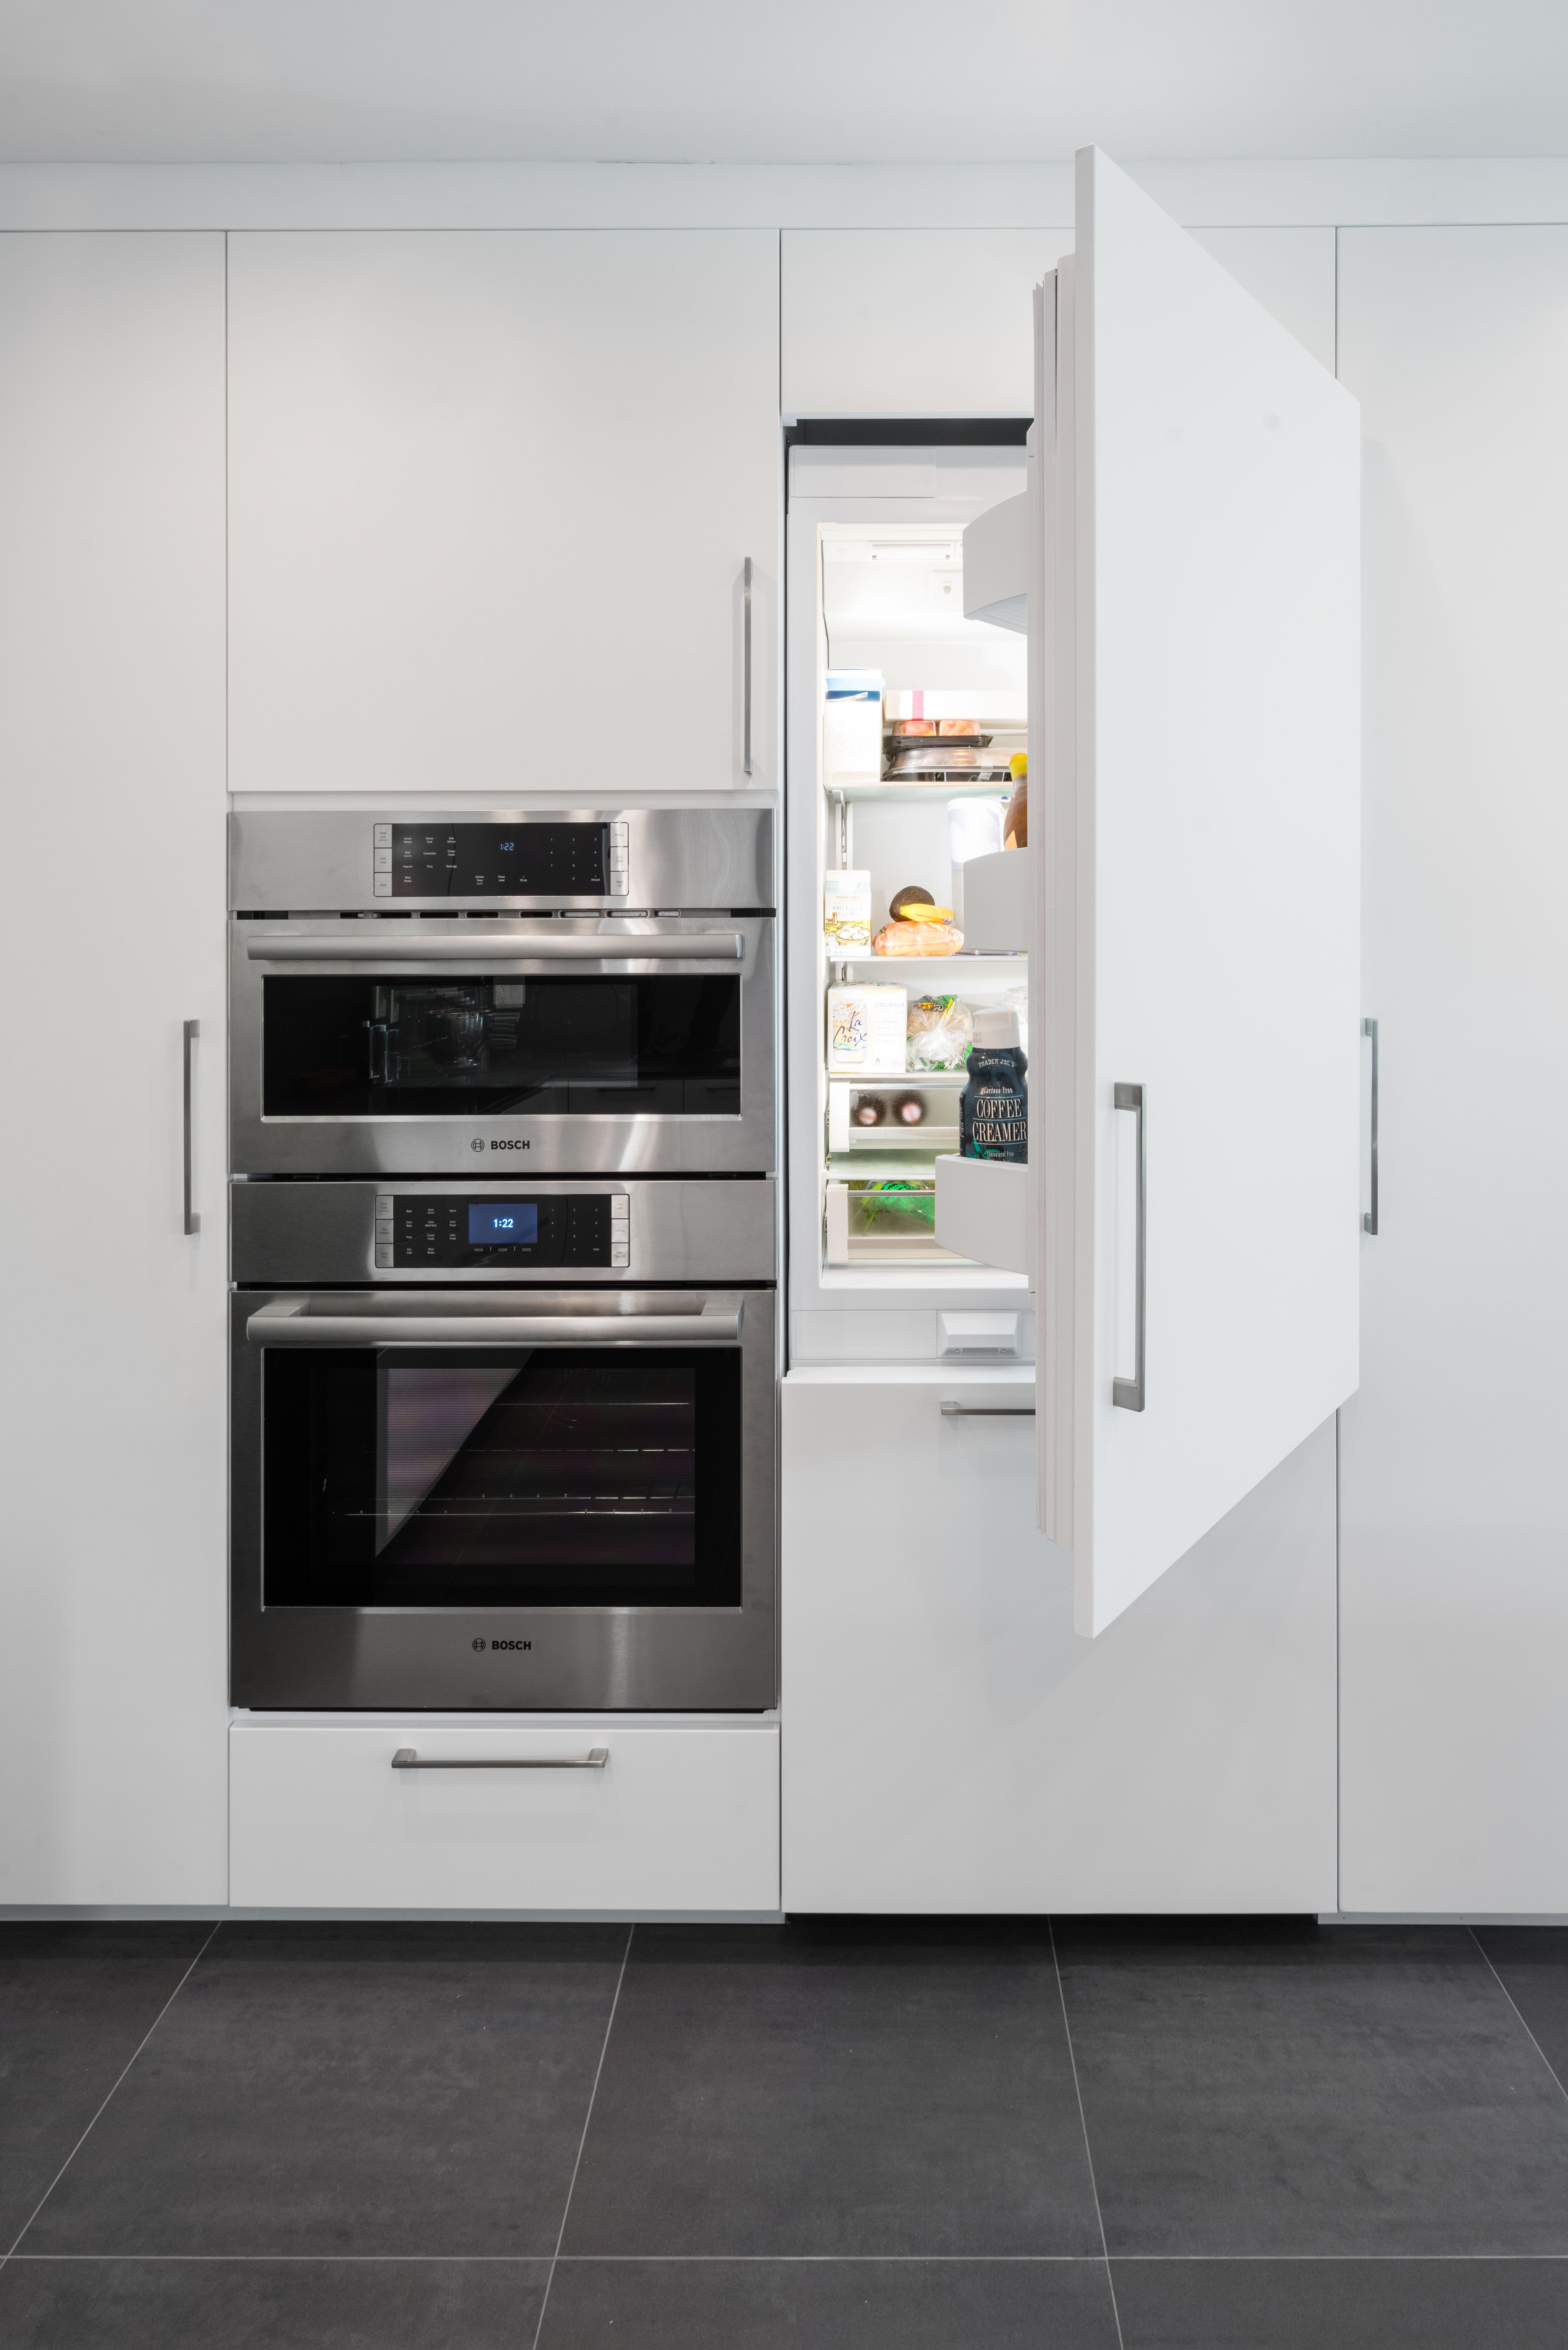 While The Cooking Liances Remain In Open Bosch Refrigerator Freezer And Dishwasher Are Integrated Into Cabinetry